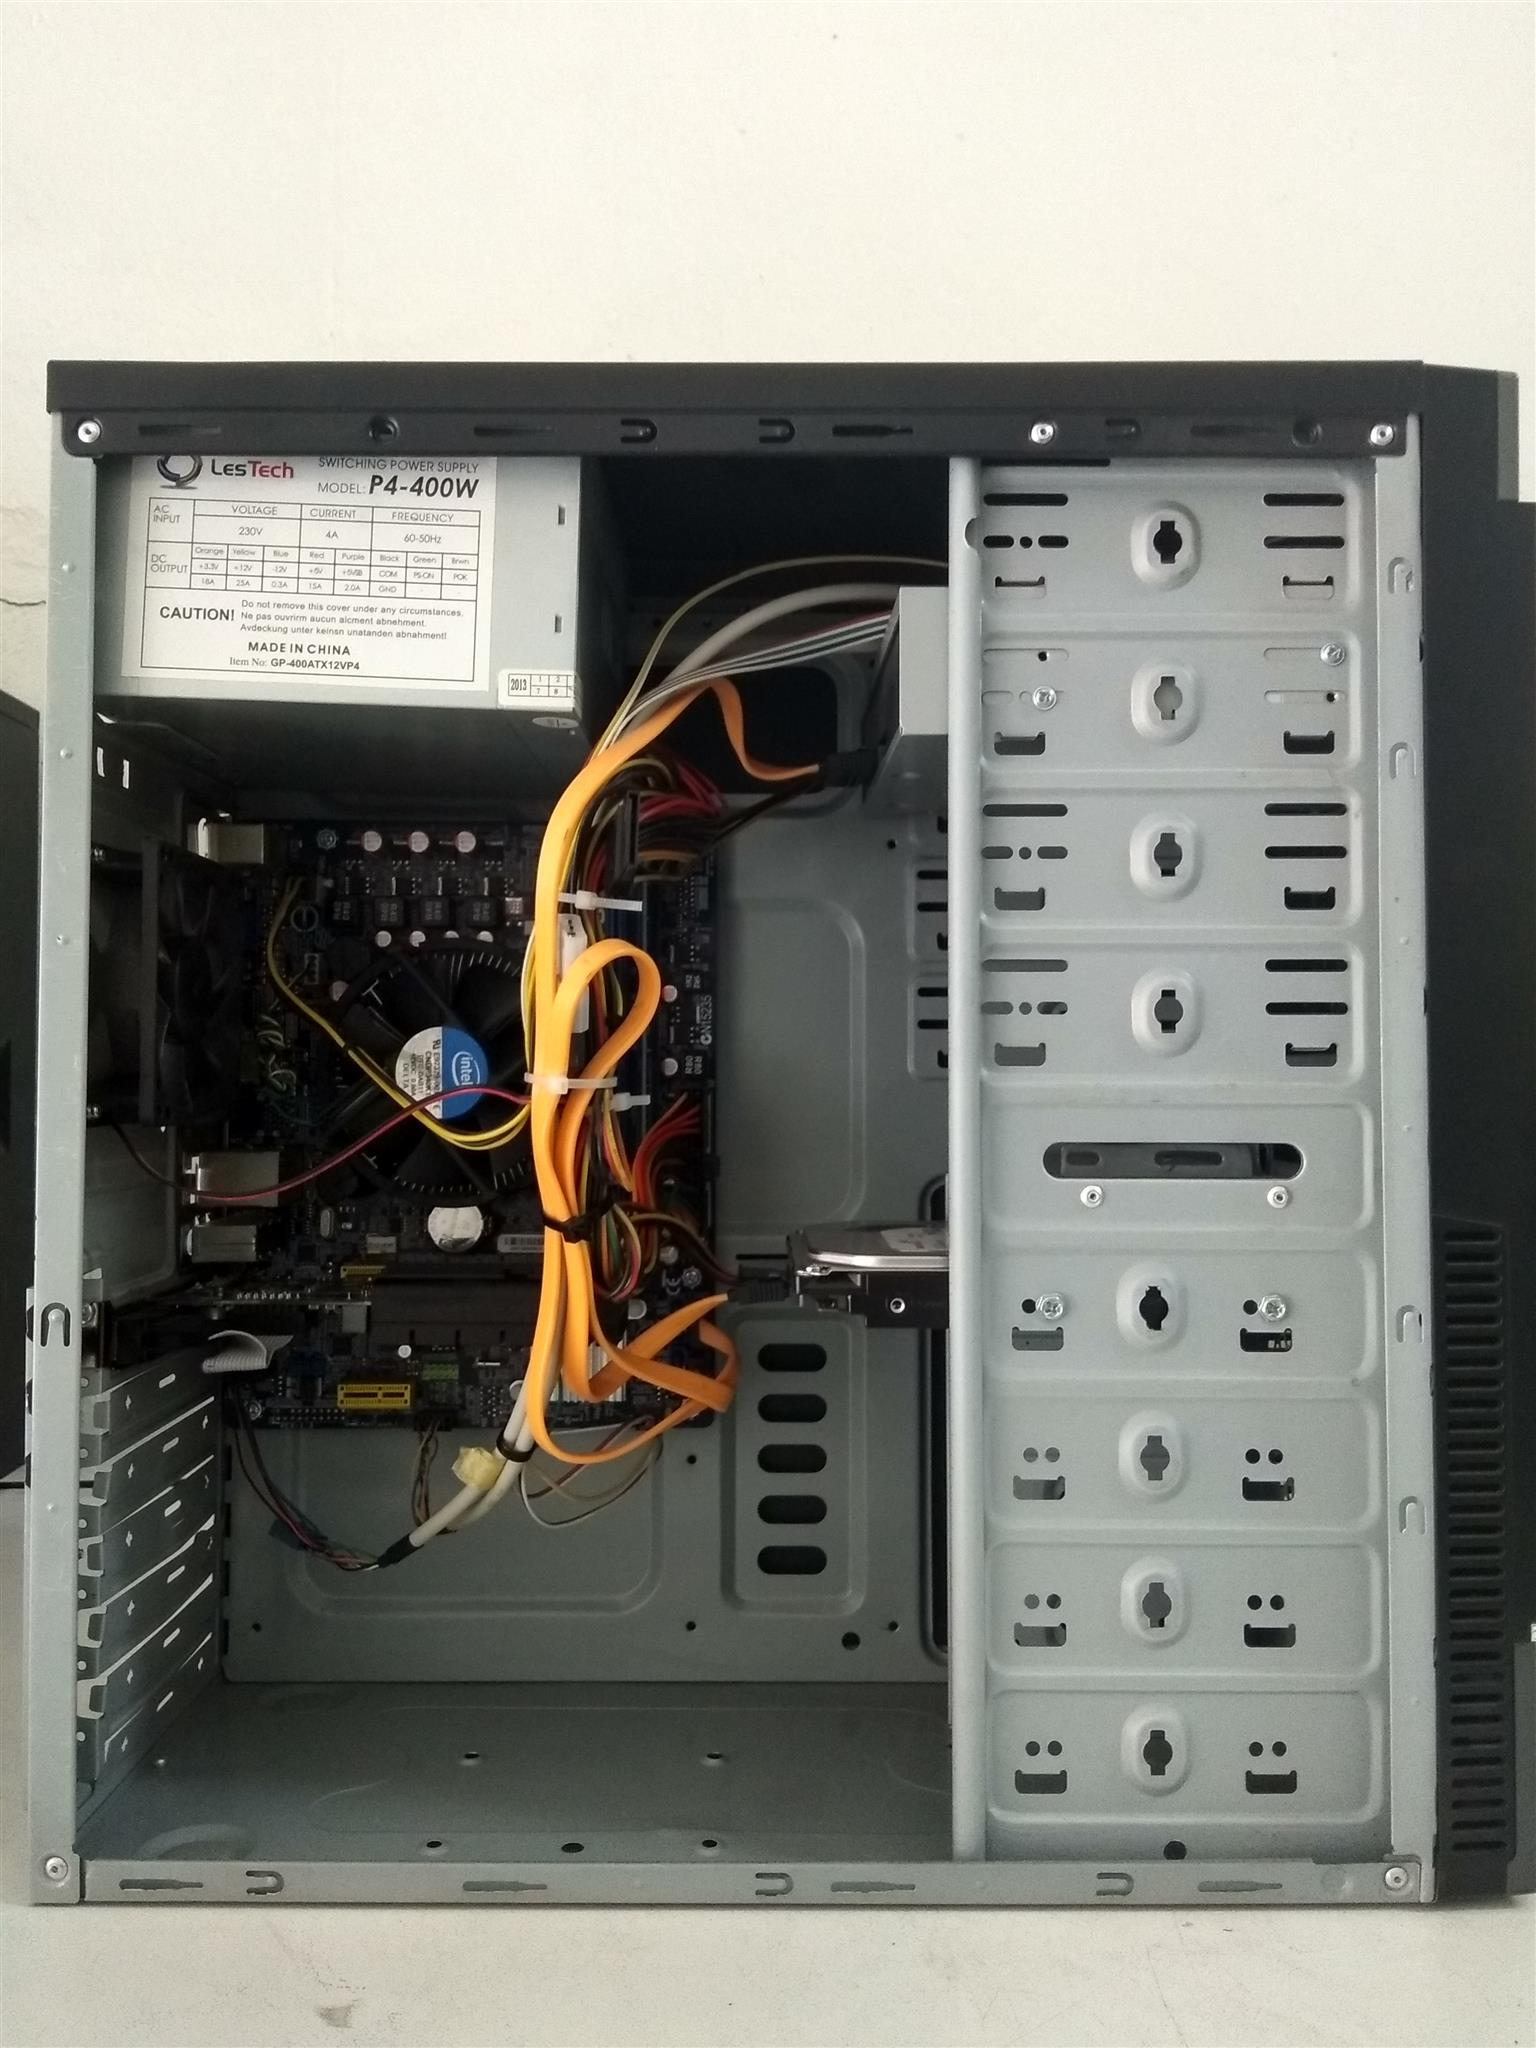 intel core i5 desktop for sale